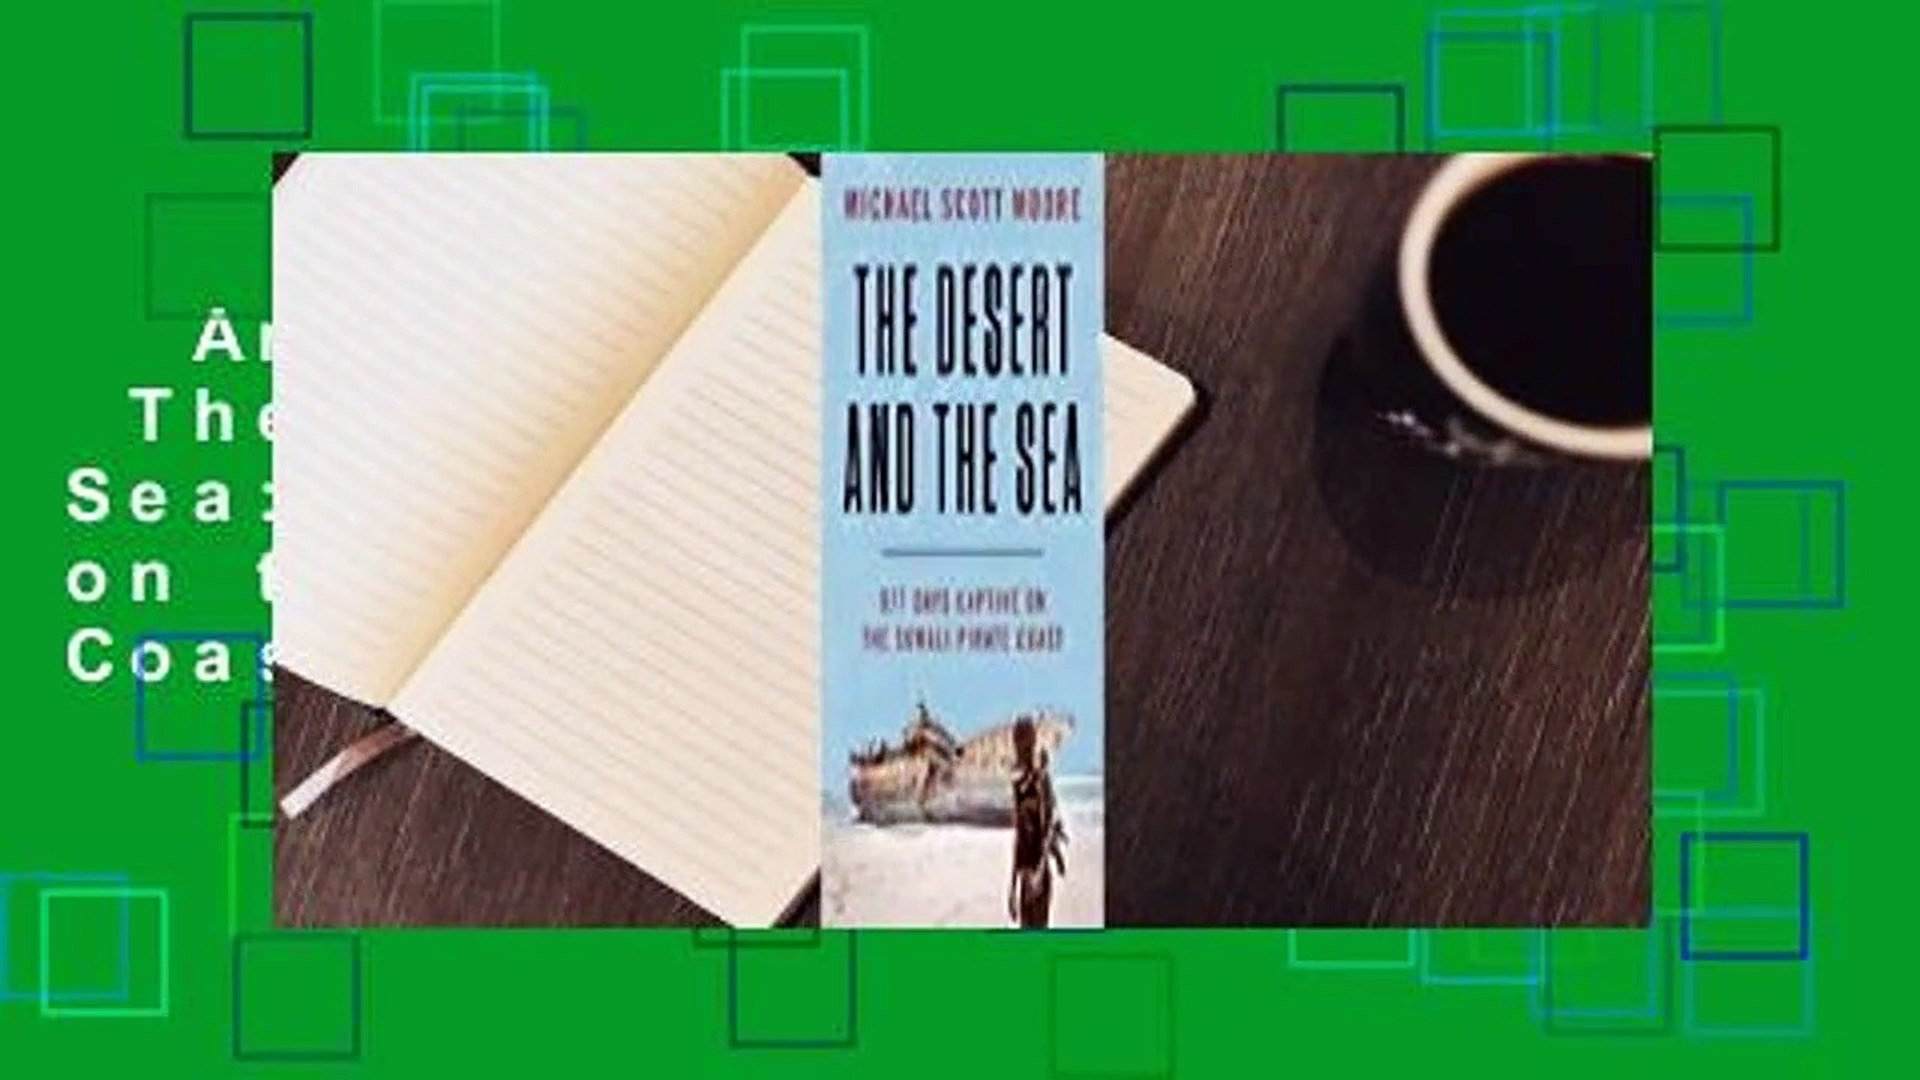 Any Format For Kindle  The Desert and the Sea: 977 Days Captive on the Somali Pirate Coast by